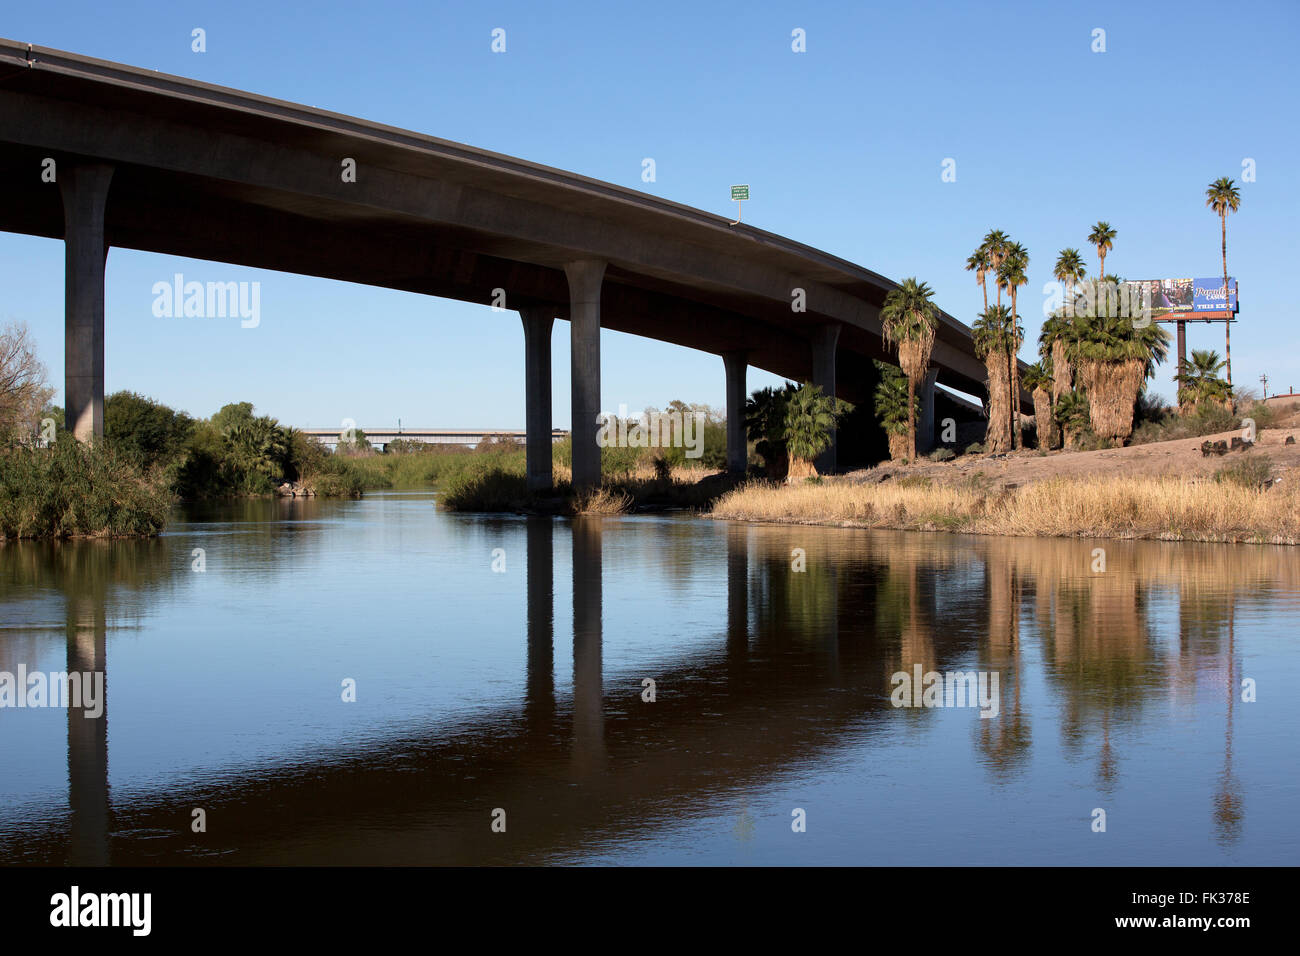 Colorado river yuma arizona usa stock photo royalty for Landscaping rocks yuma az